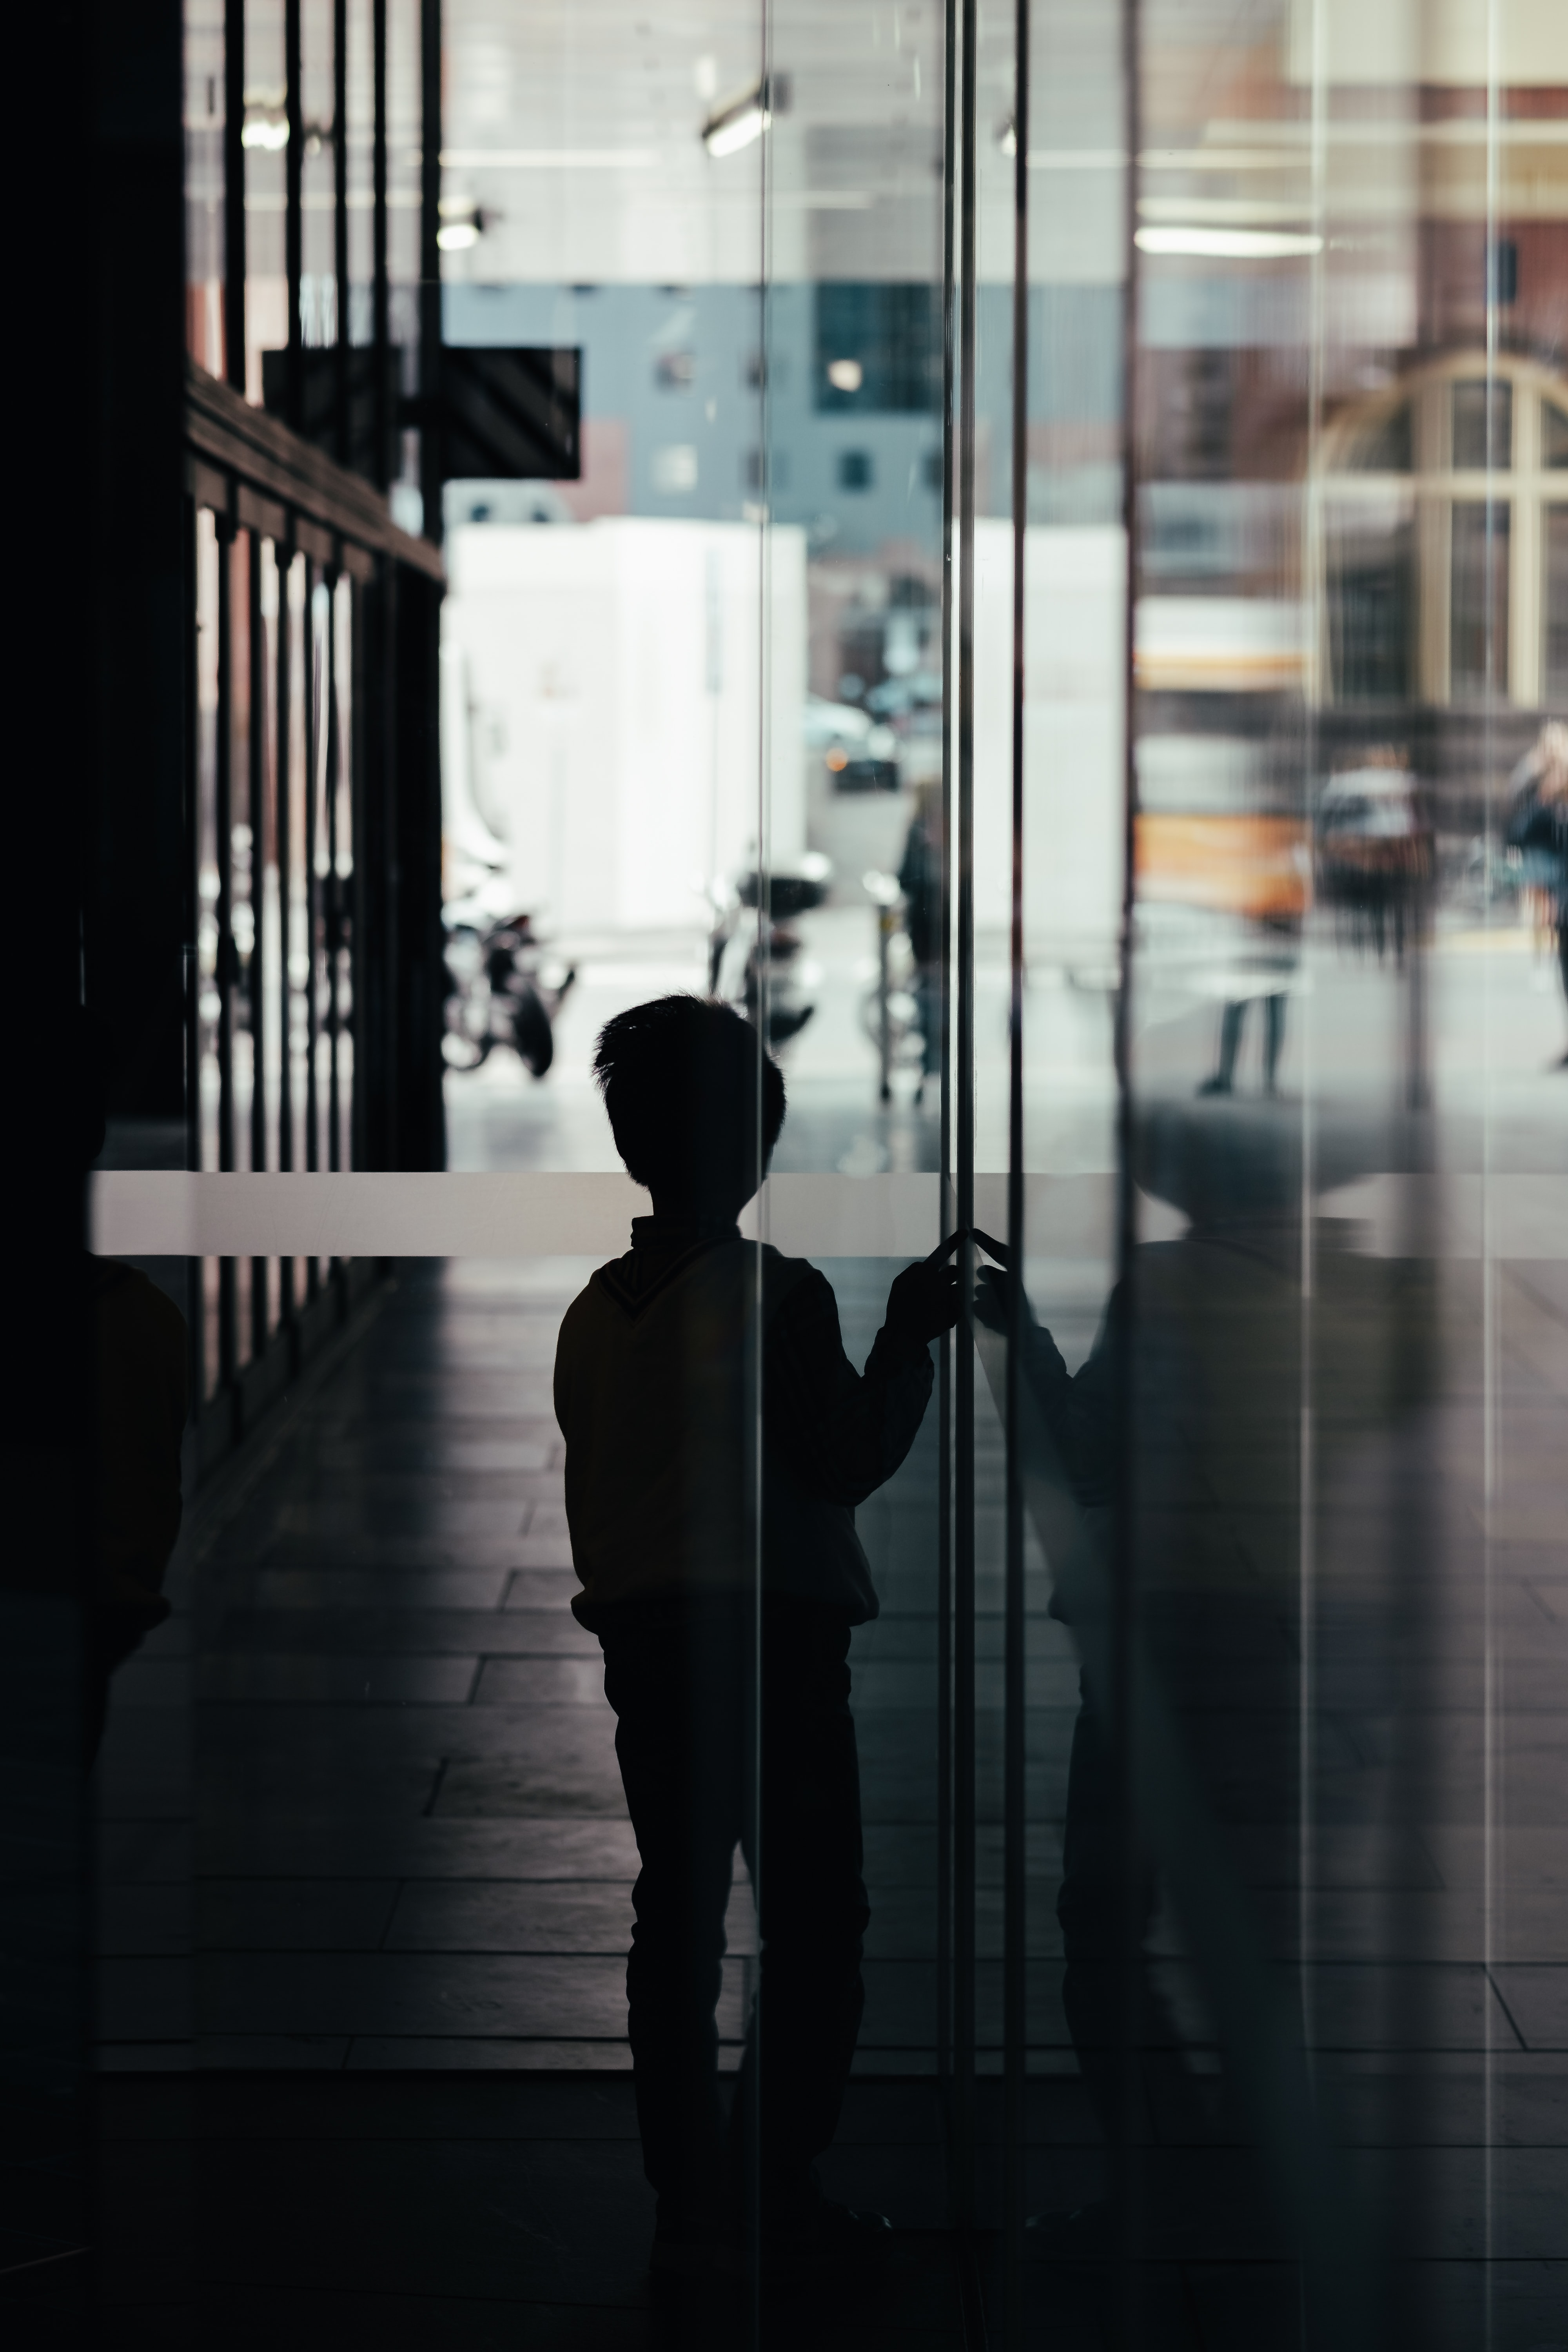 silhouette photo of boy standing near glass wall